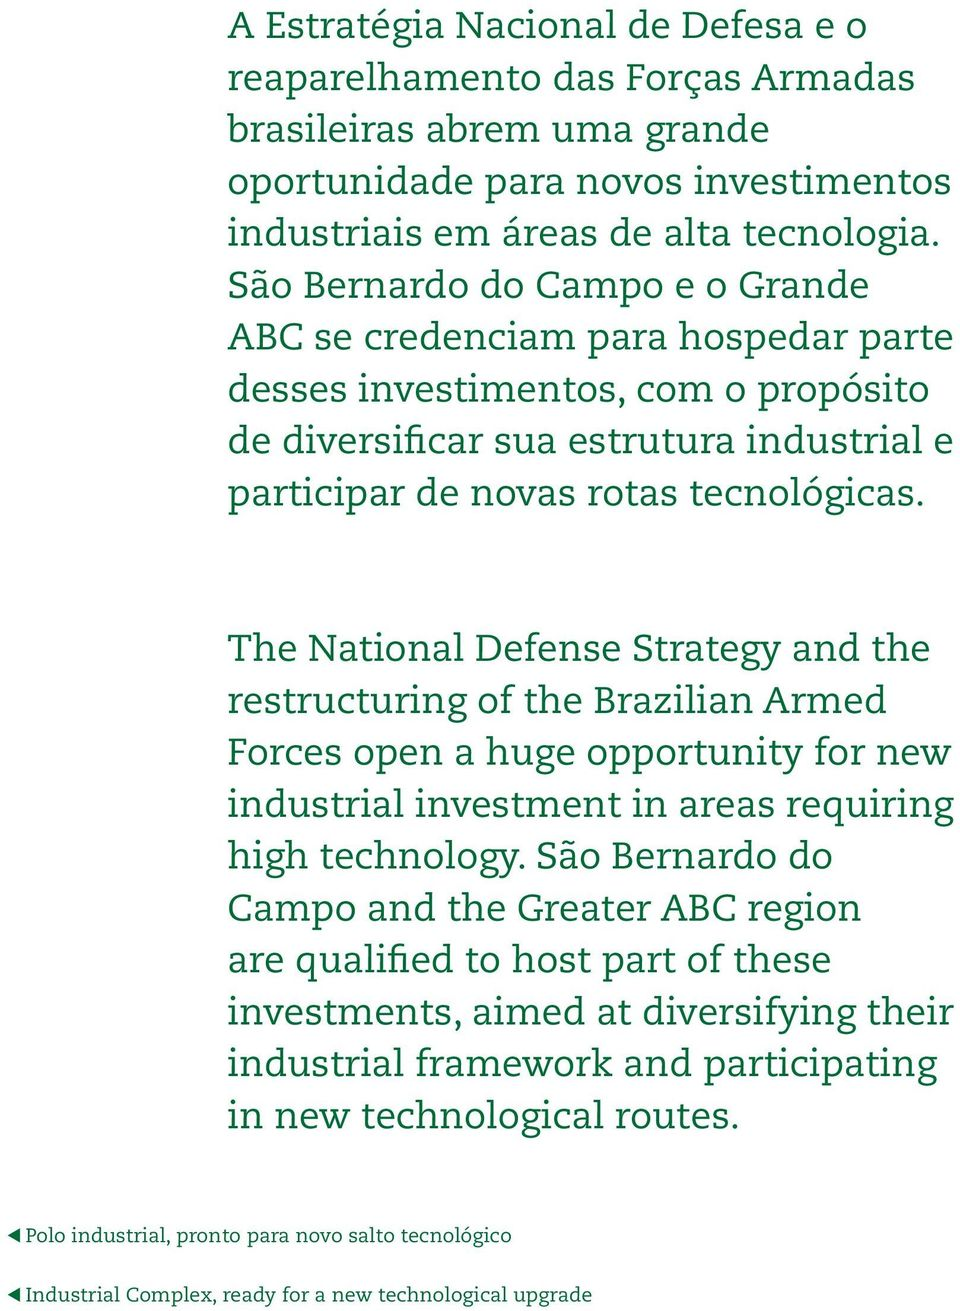 The National Defense Strategy and the restructuring of the Brazilian Armed Forces open a huge opportunity for new industrial investment in areas requiring high technology.